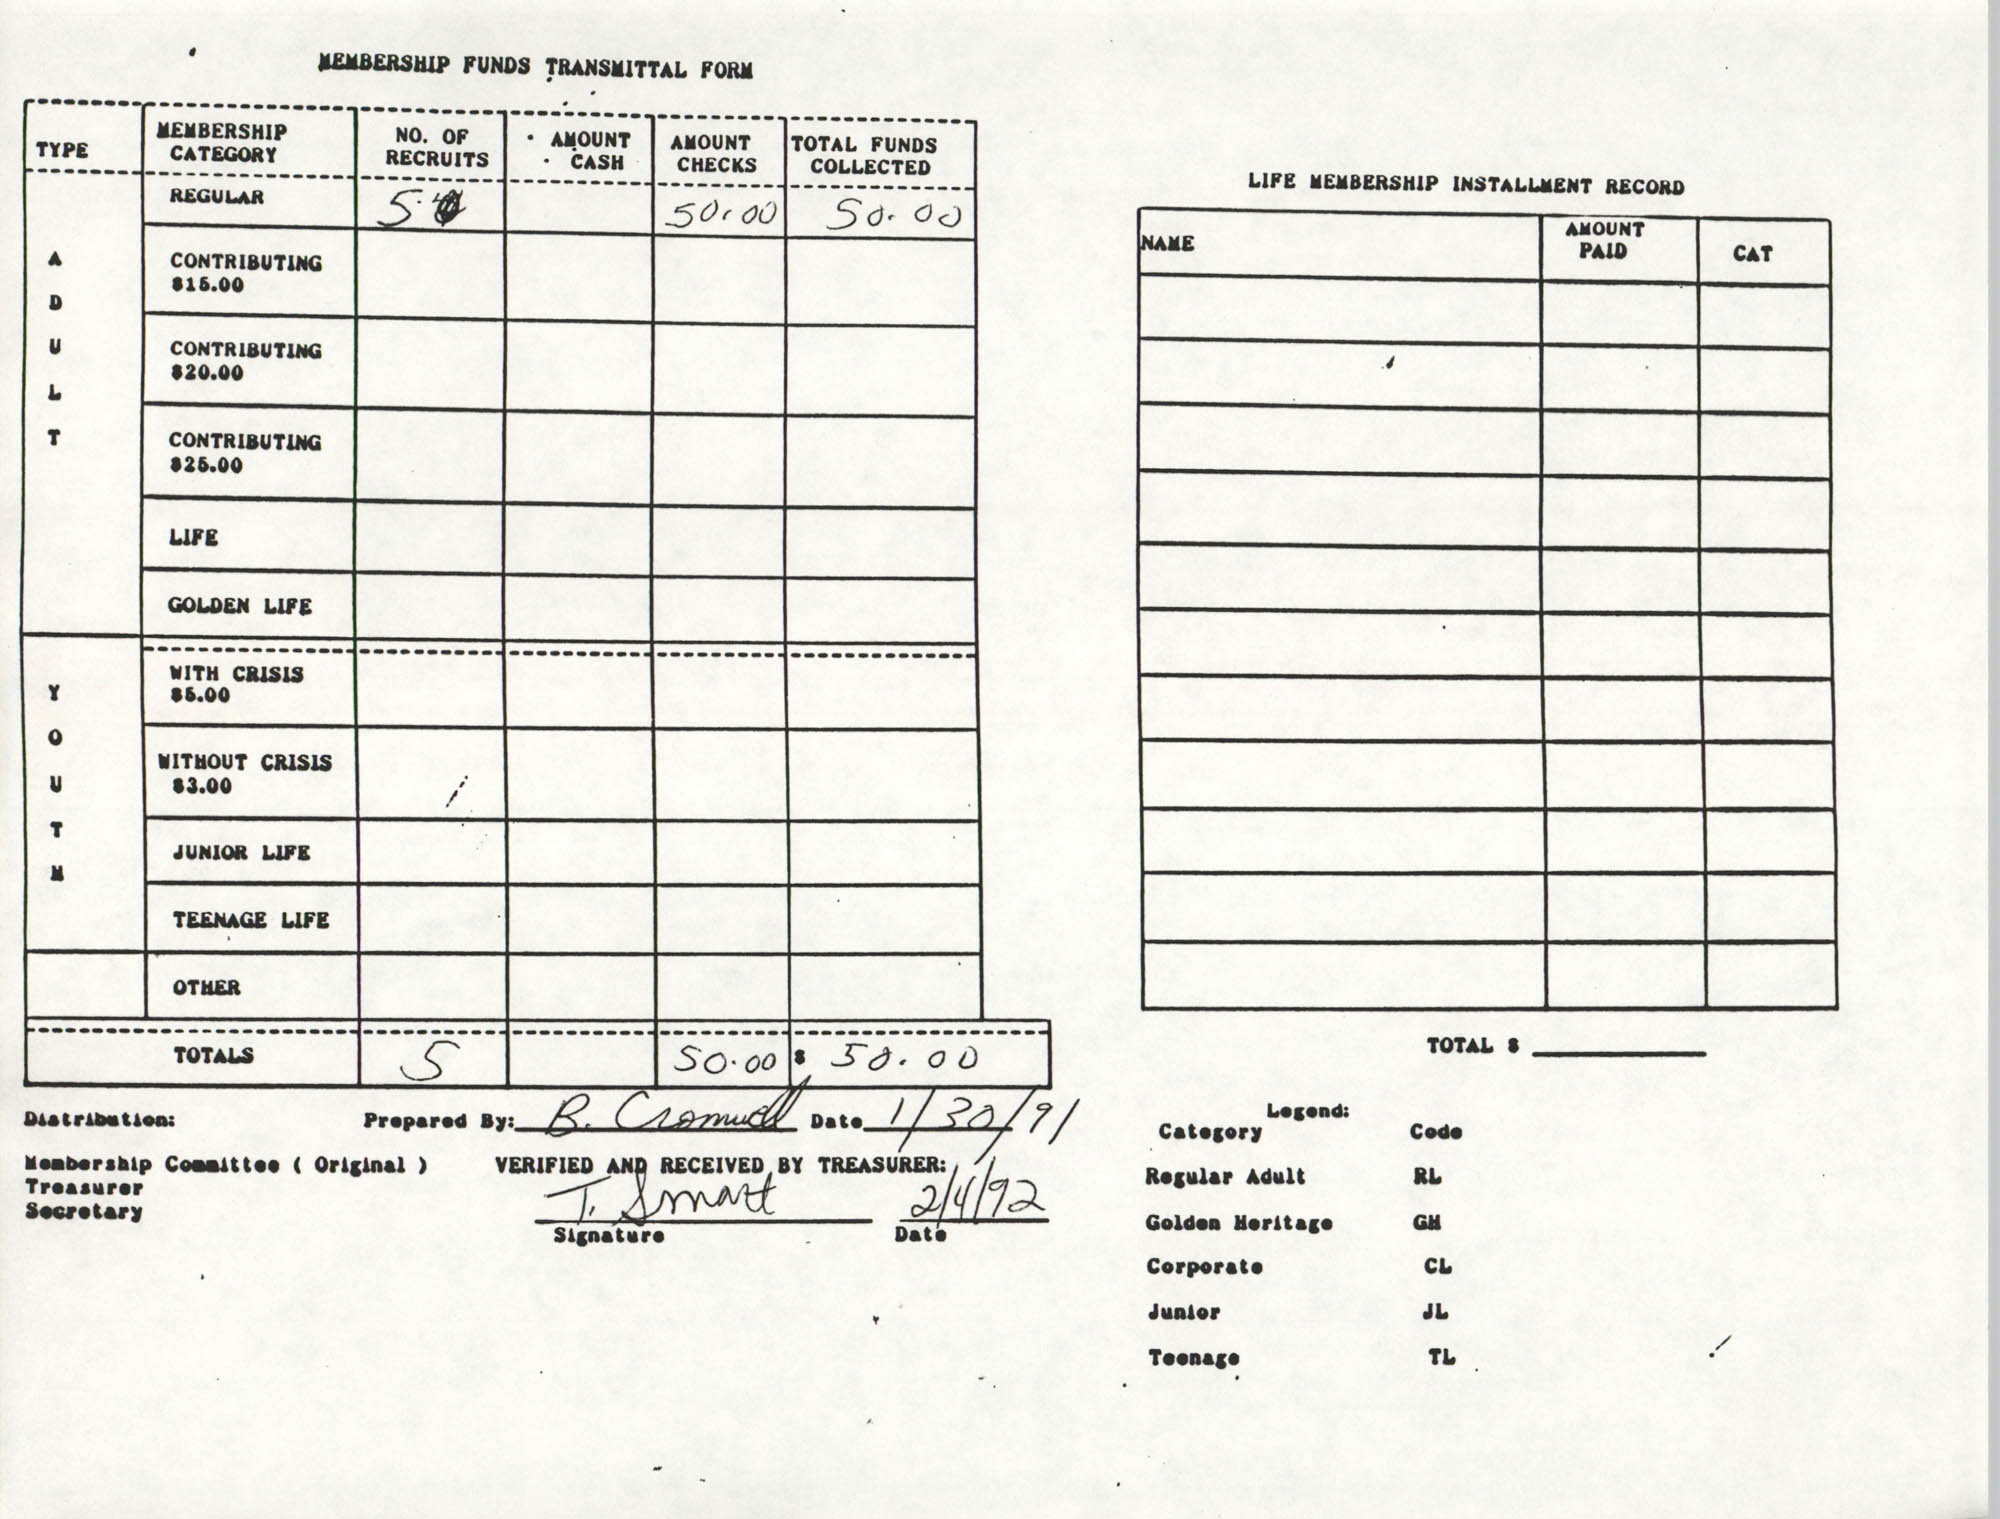 Charleston Branch of the NAACP Funds Transmittal Forms, January 1991, Page 4